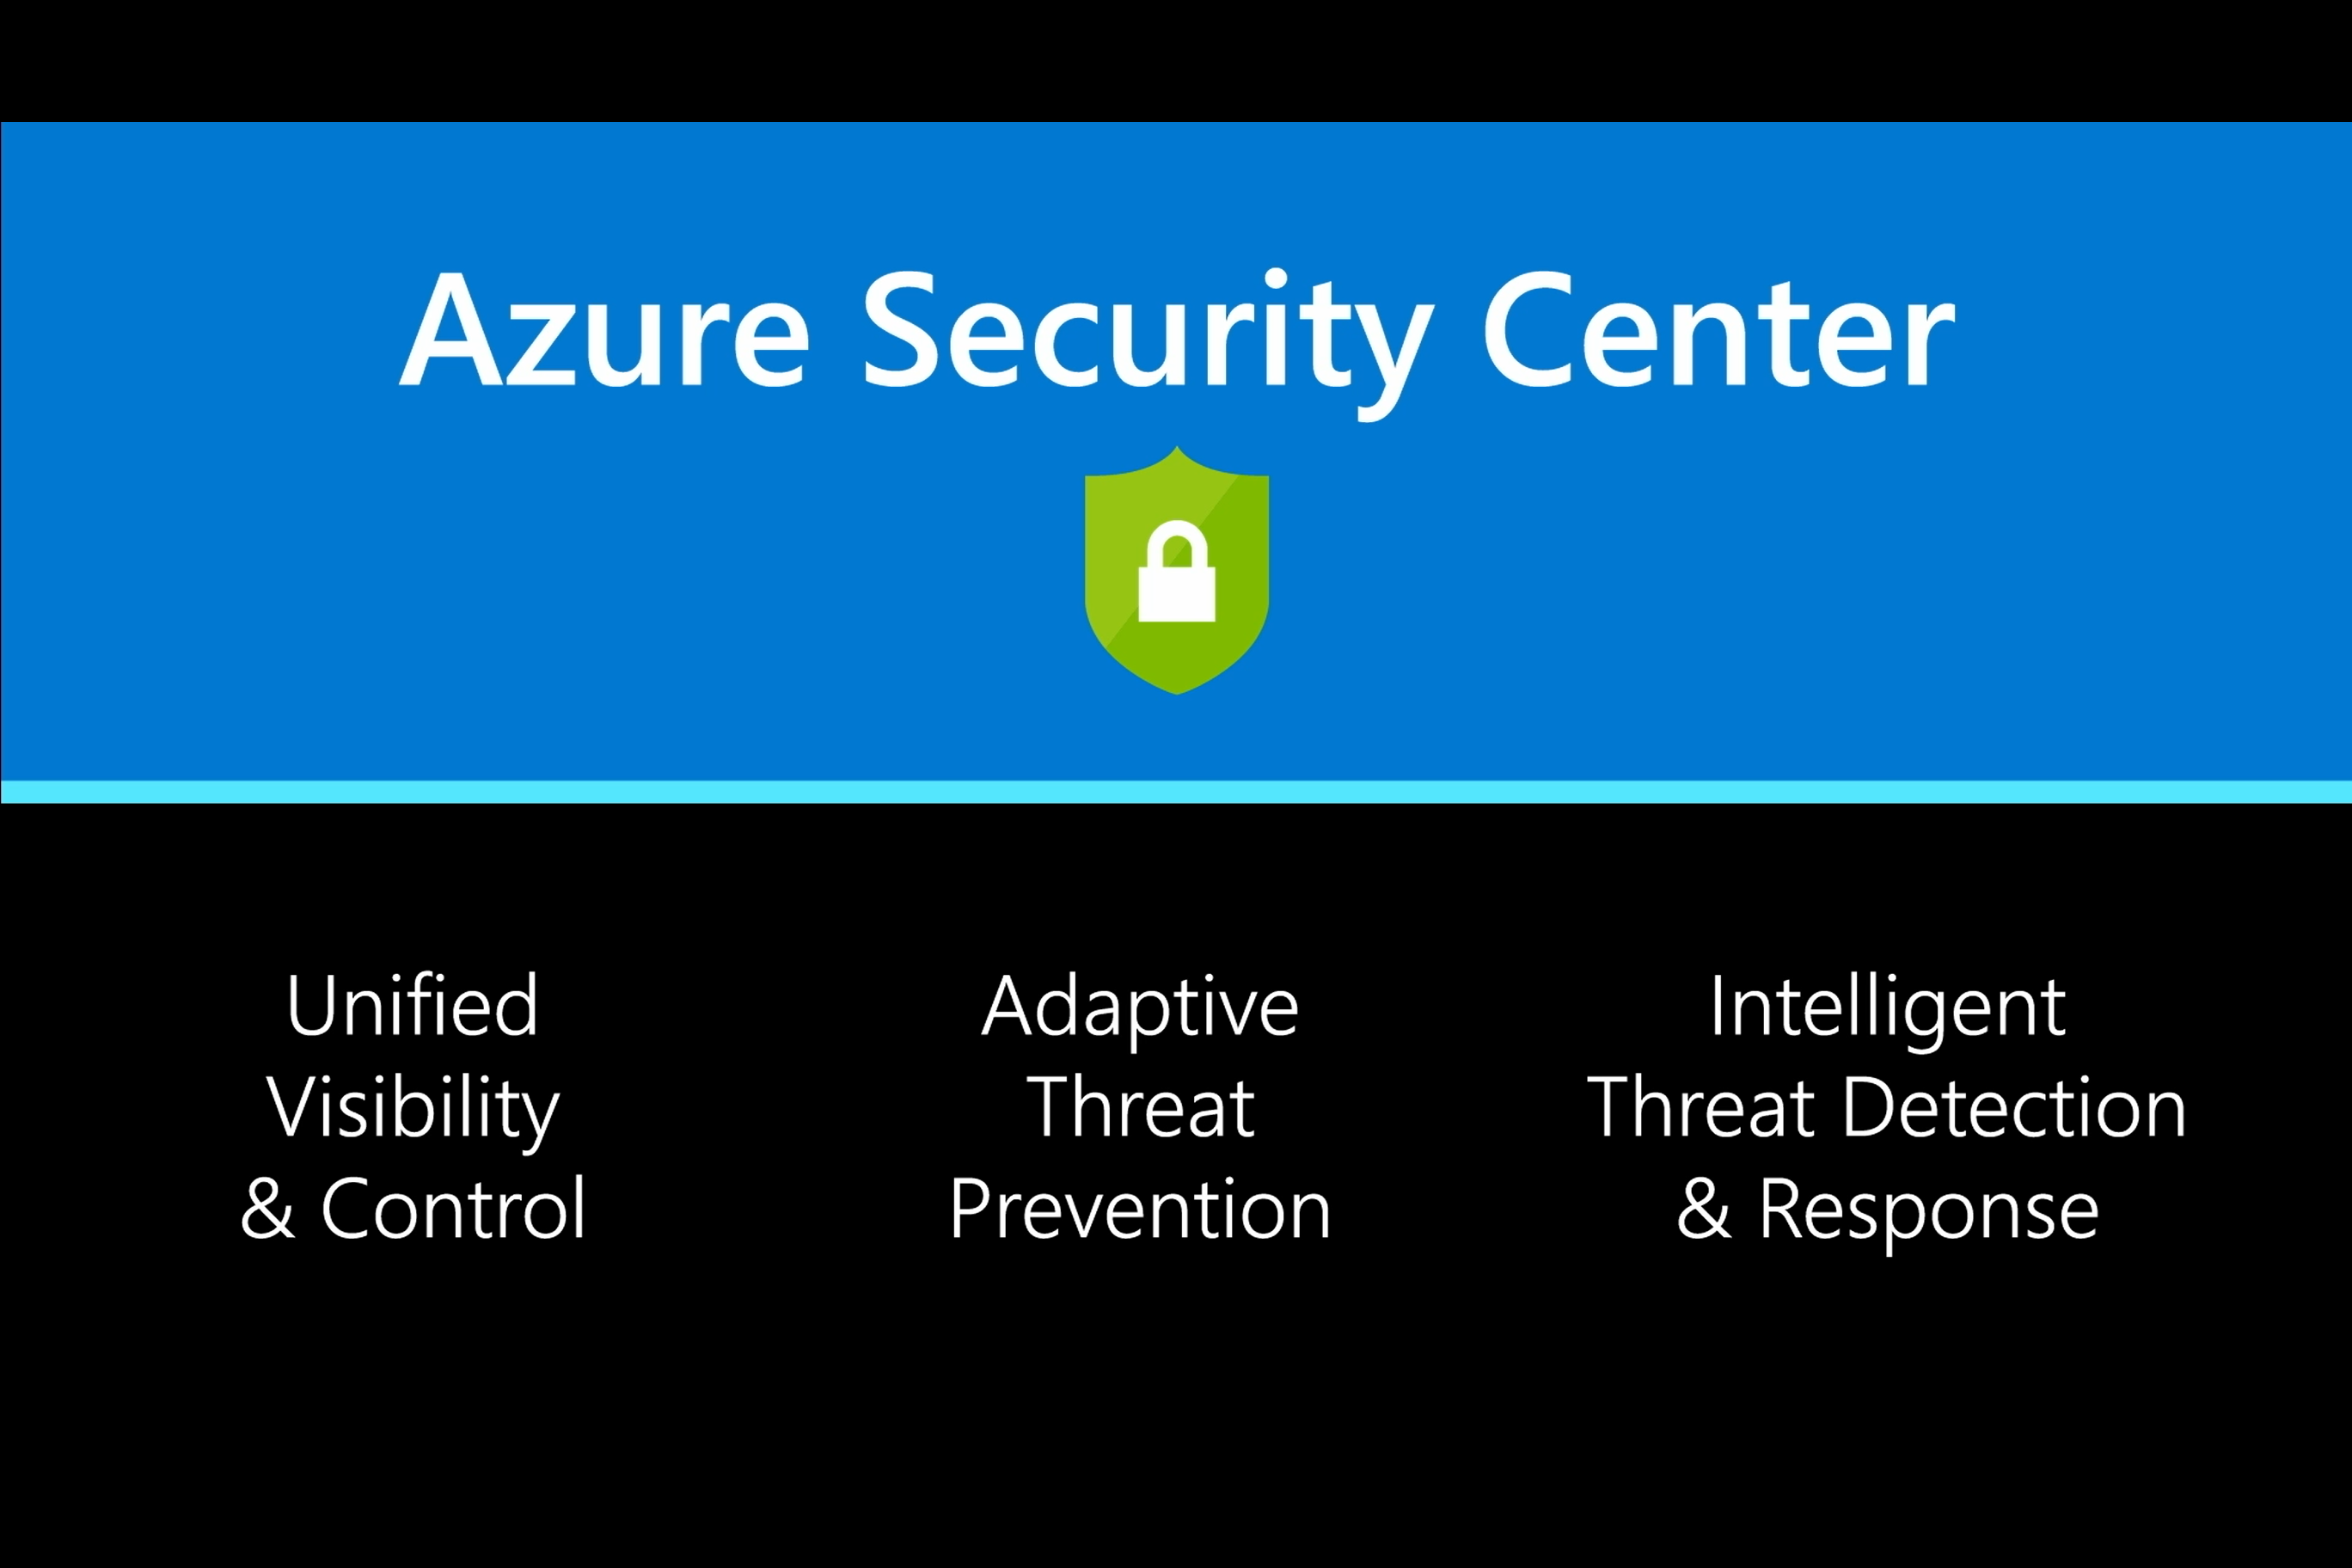 Azure Security Center for IoT